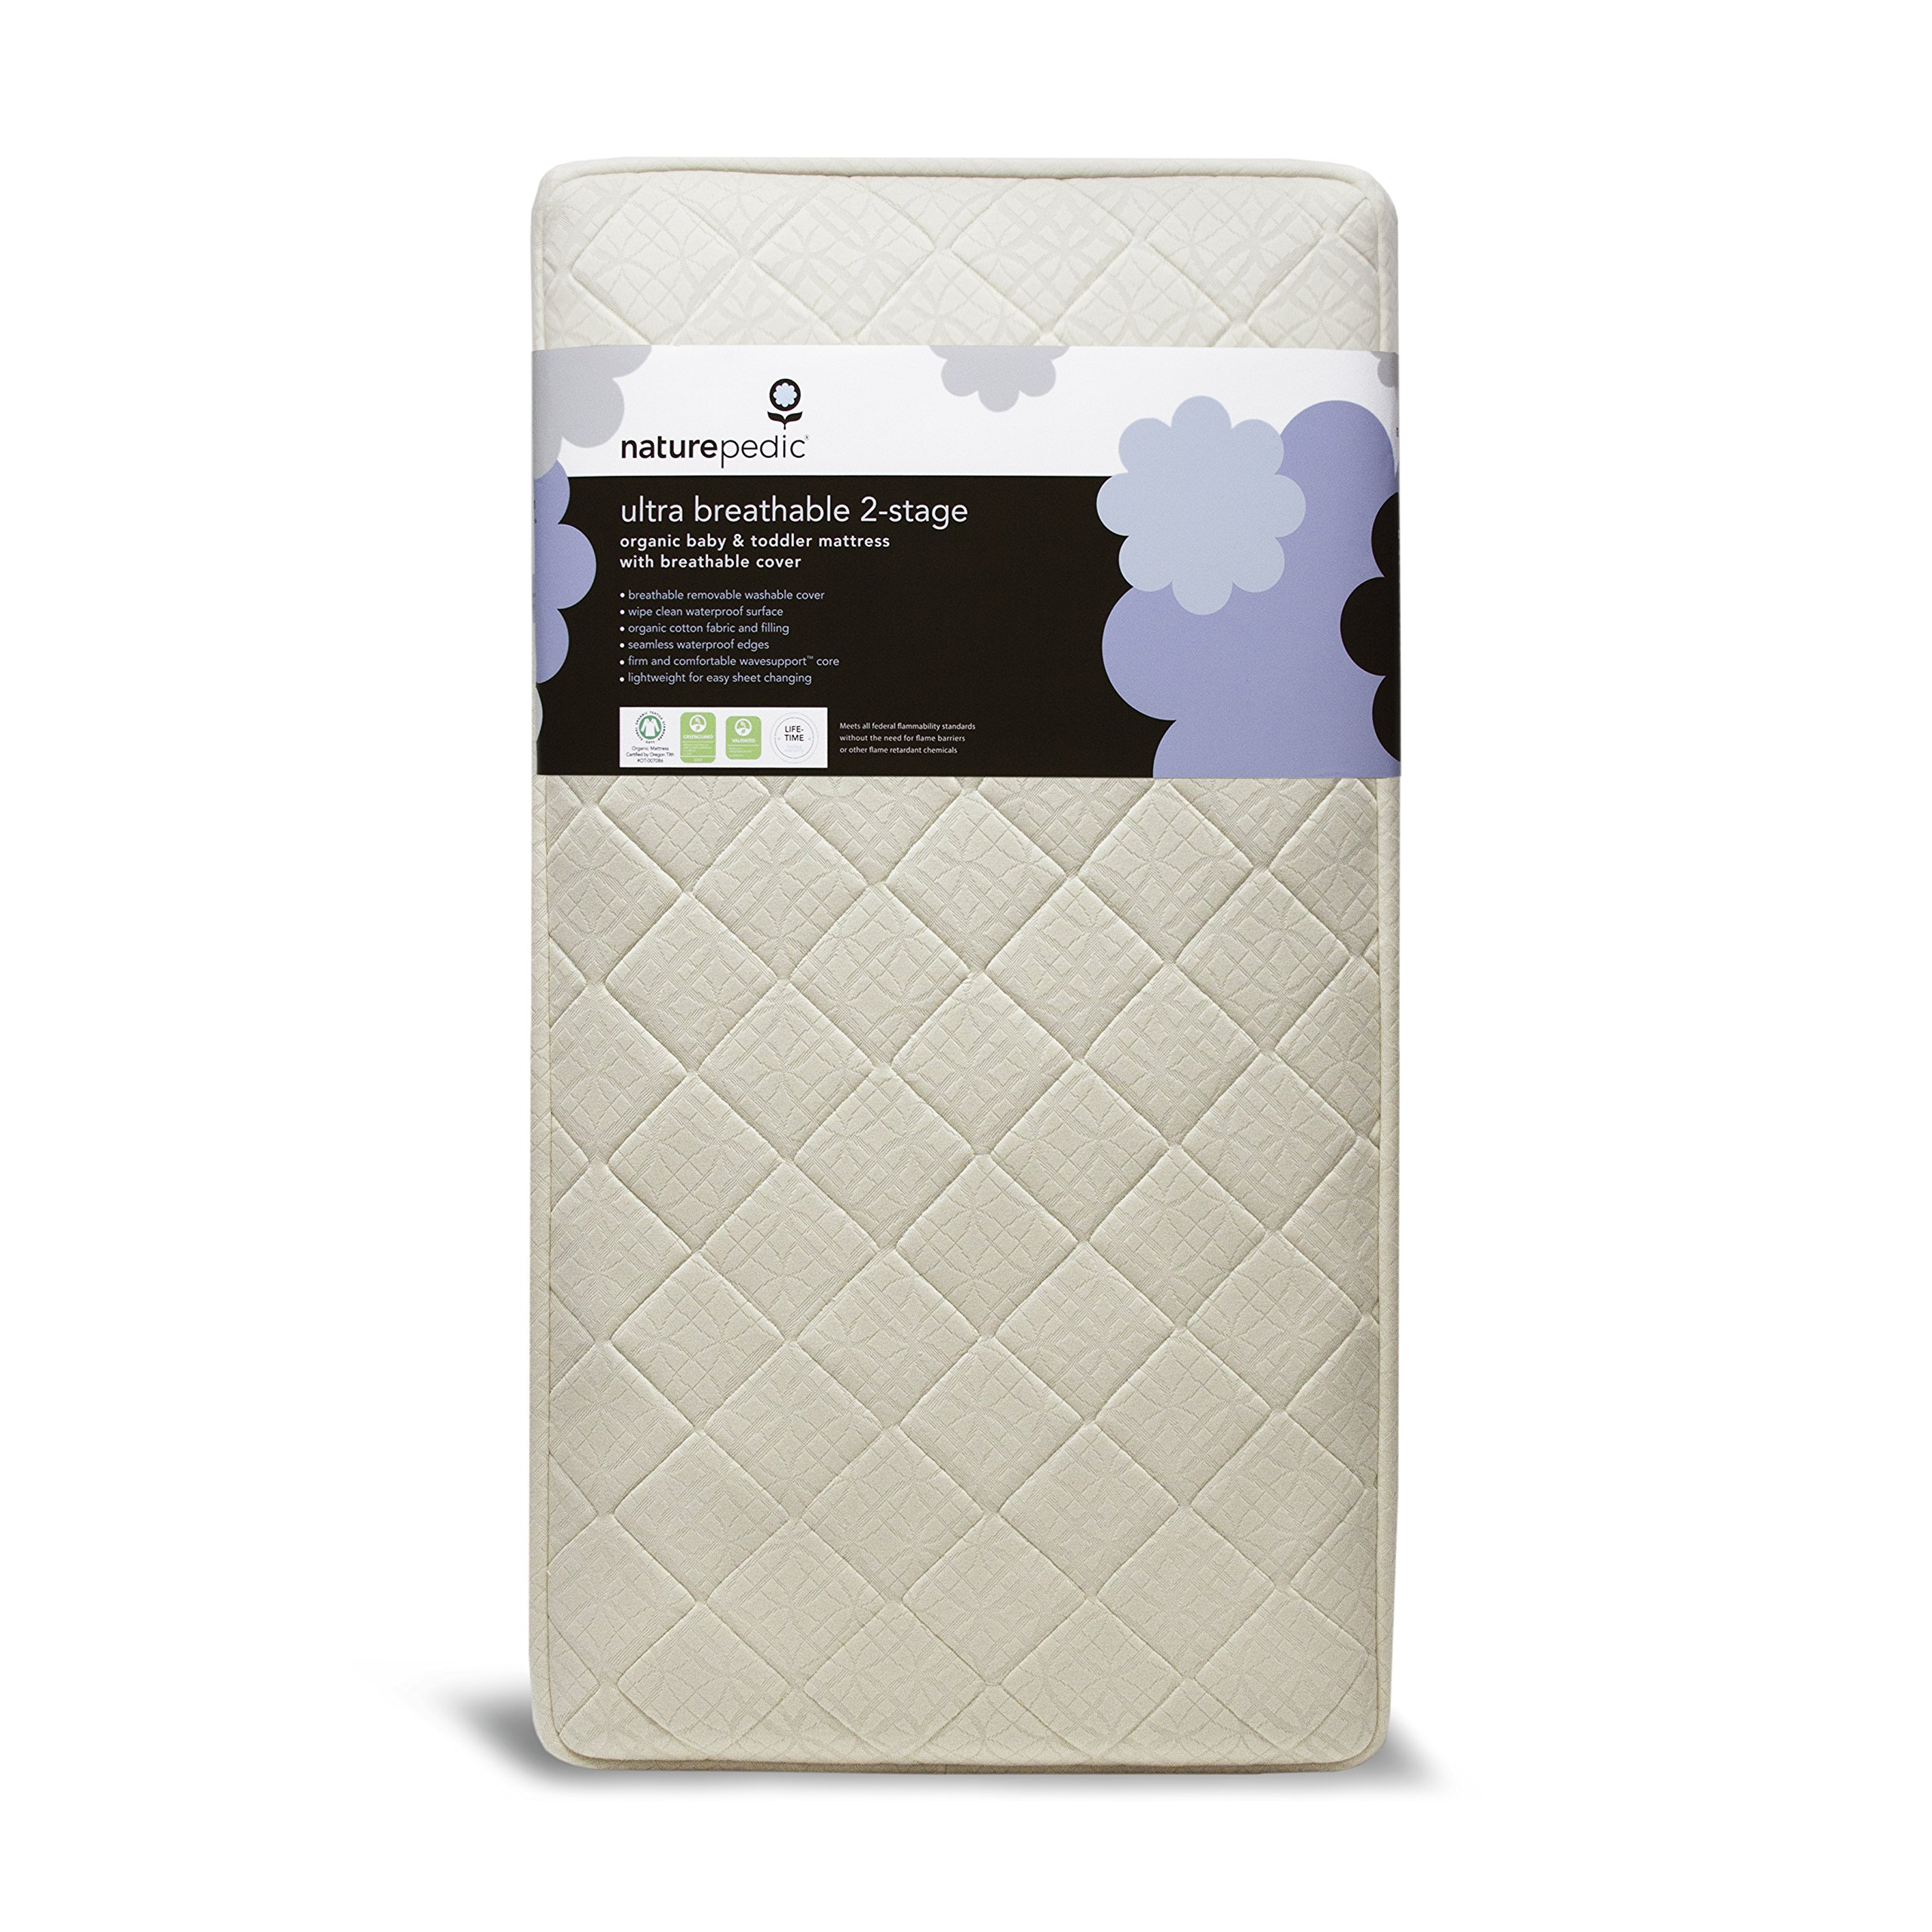 Naturepedic No Compromise Organic Cotton Classic Quilted Crib Mattress (2-Stage Ultra Breathable)